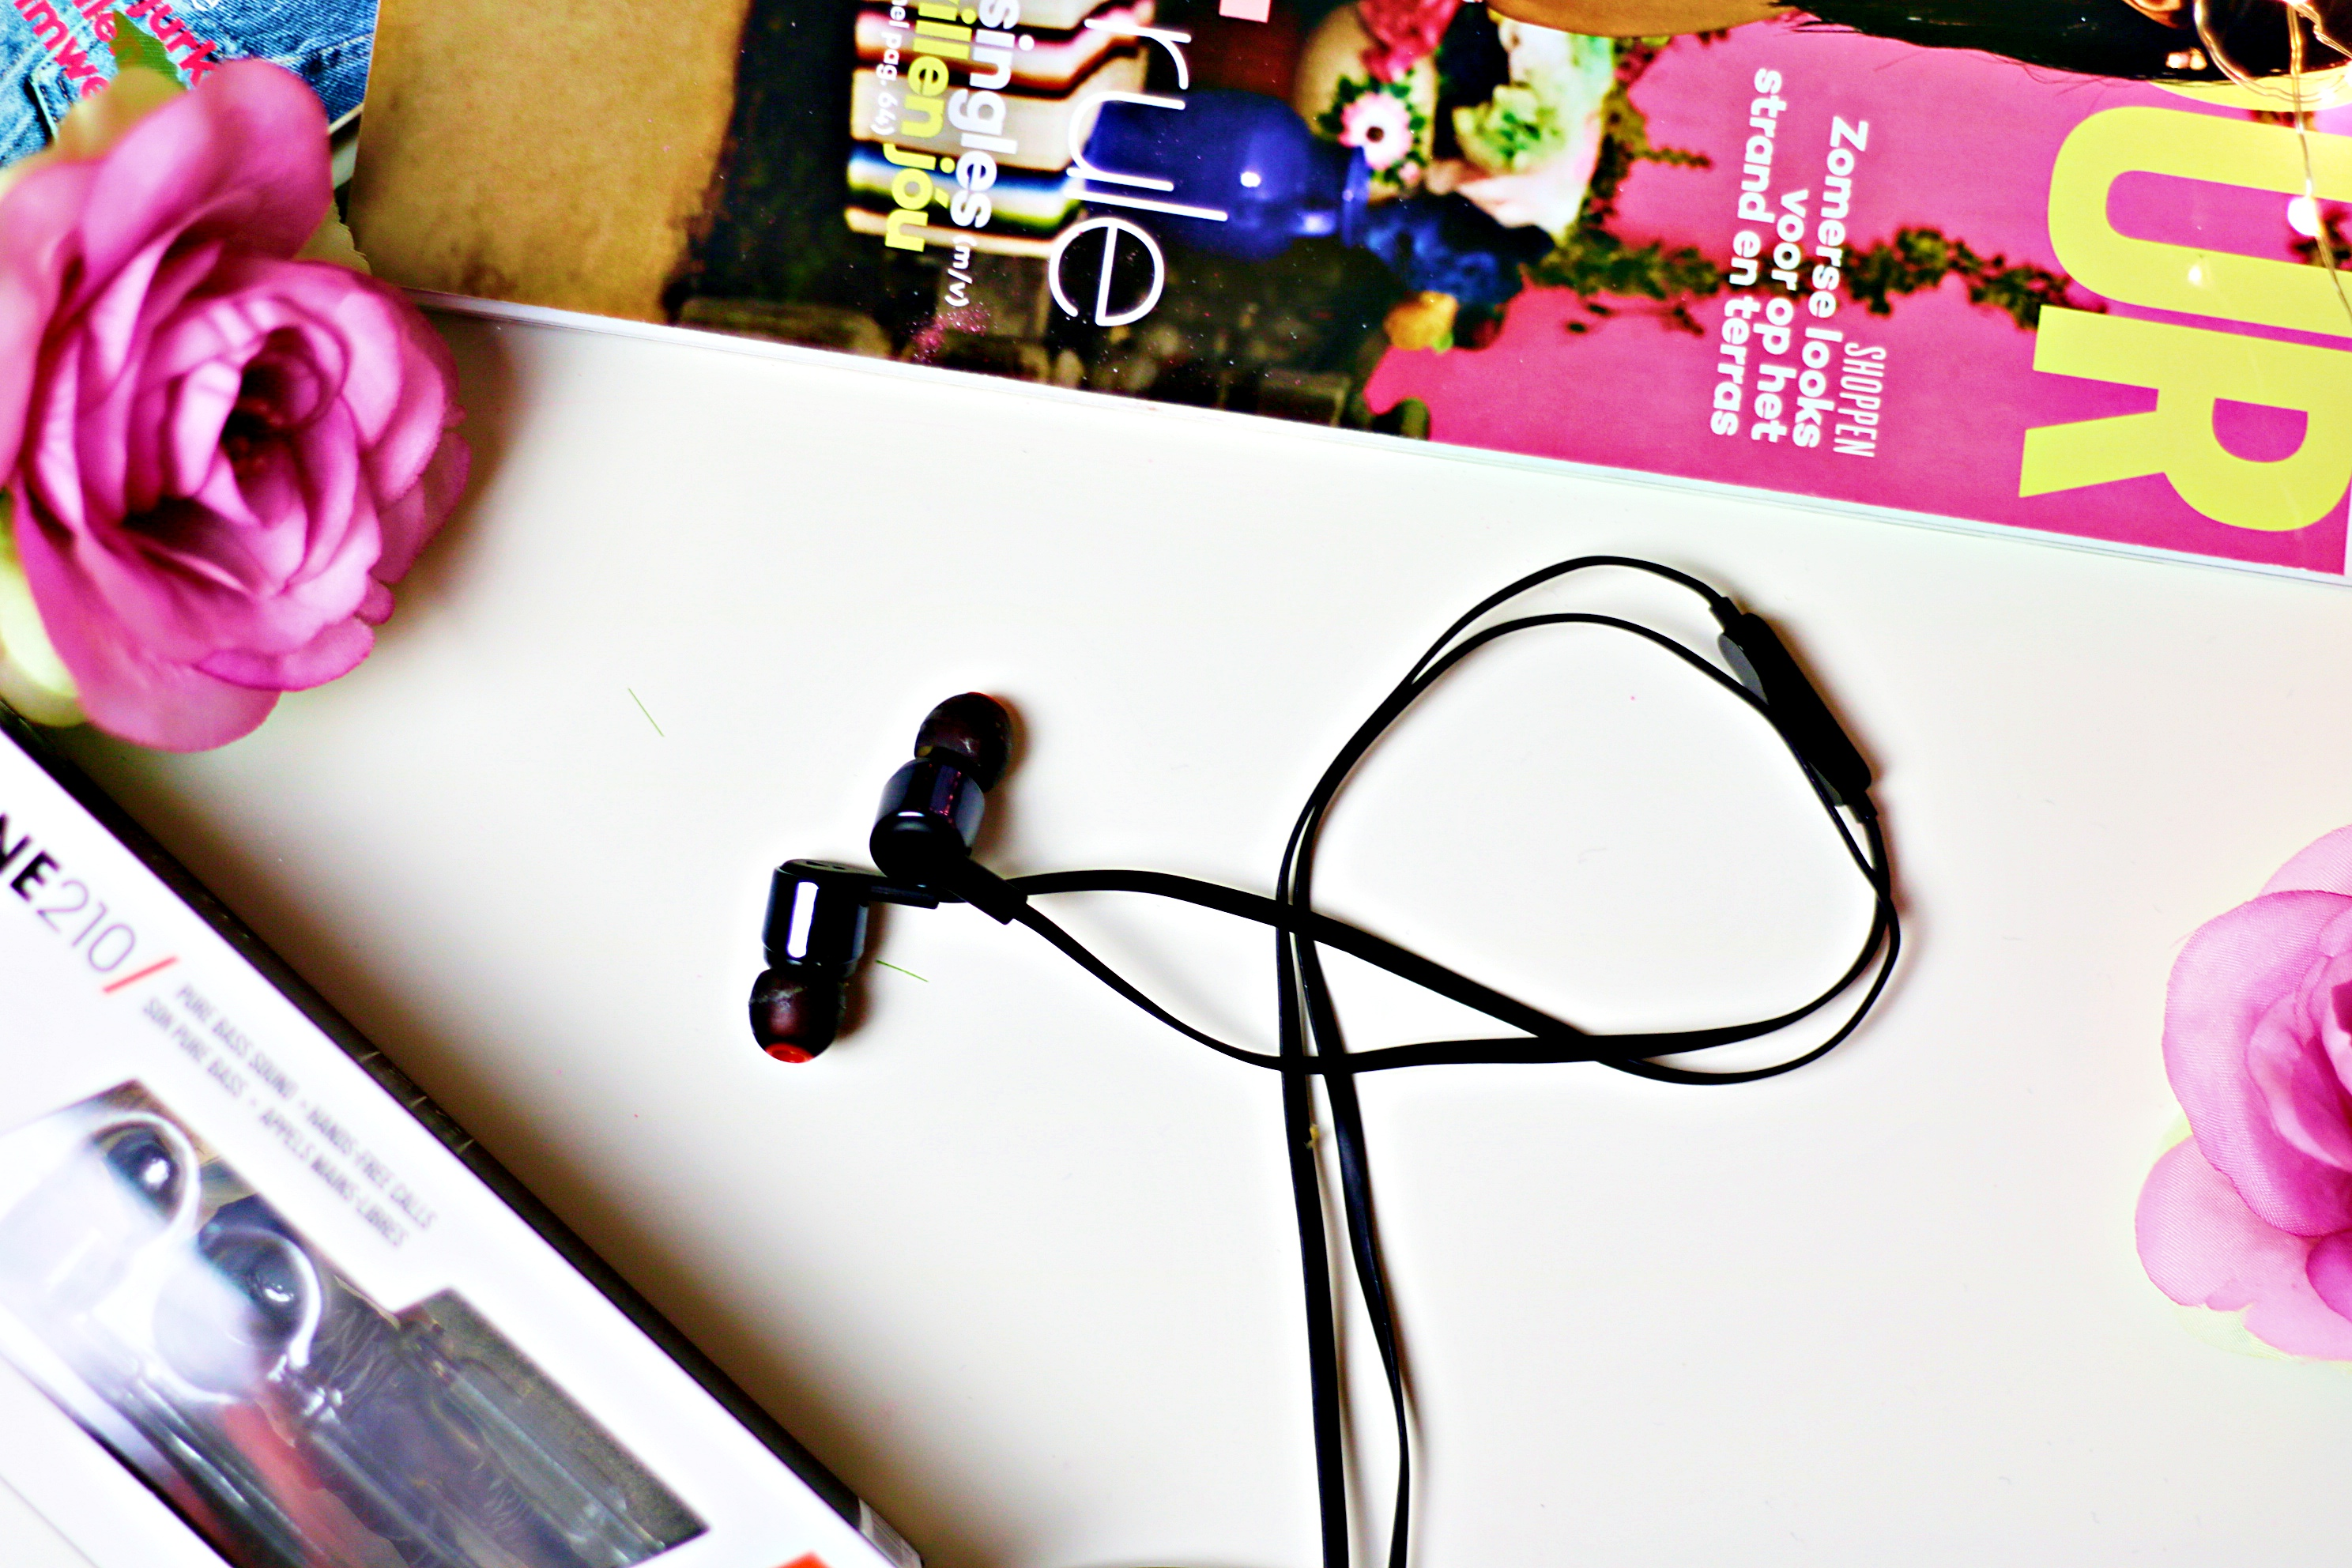 A New Dimension To Sound: JBL T210 In-Ear Earphones